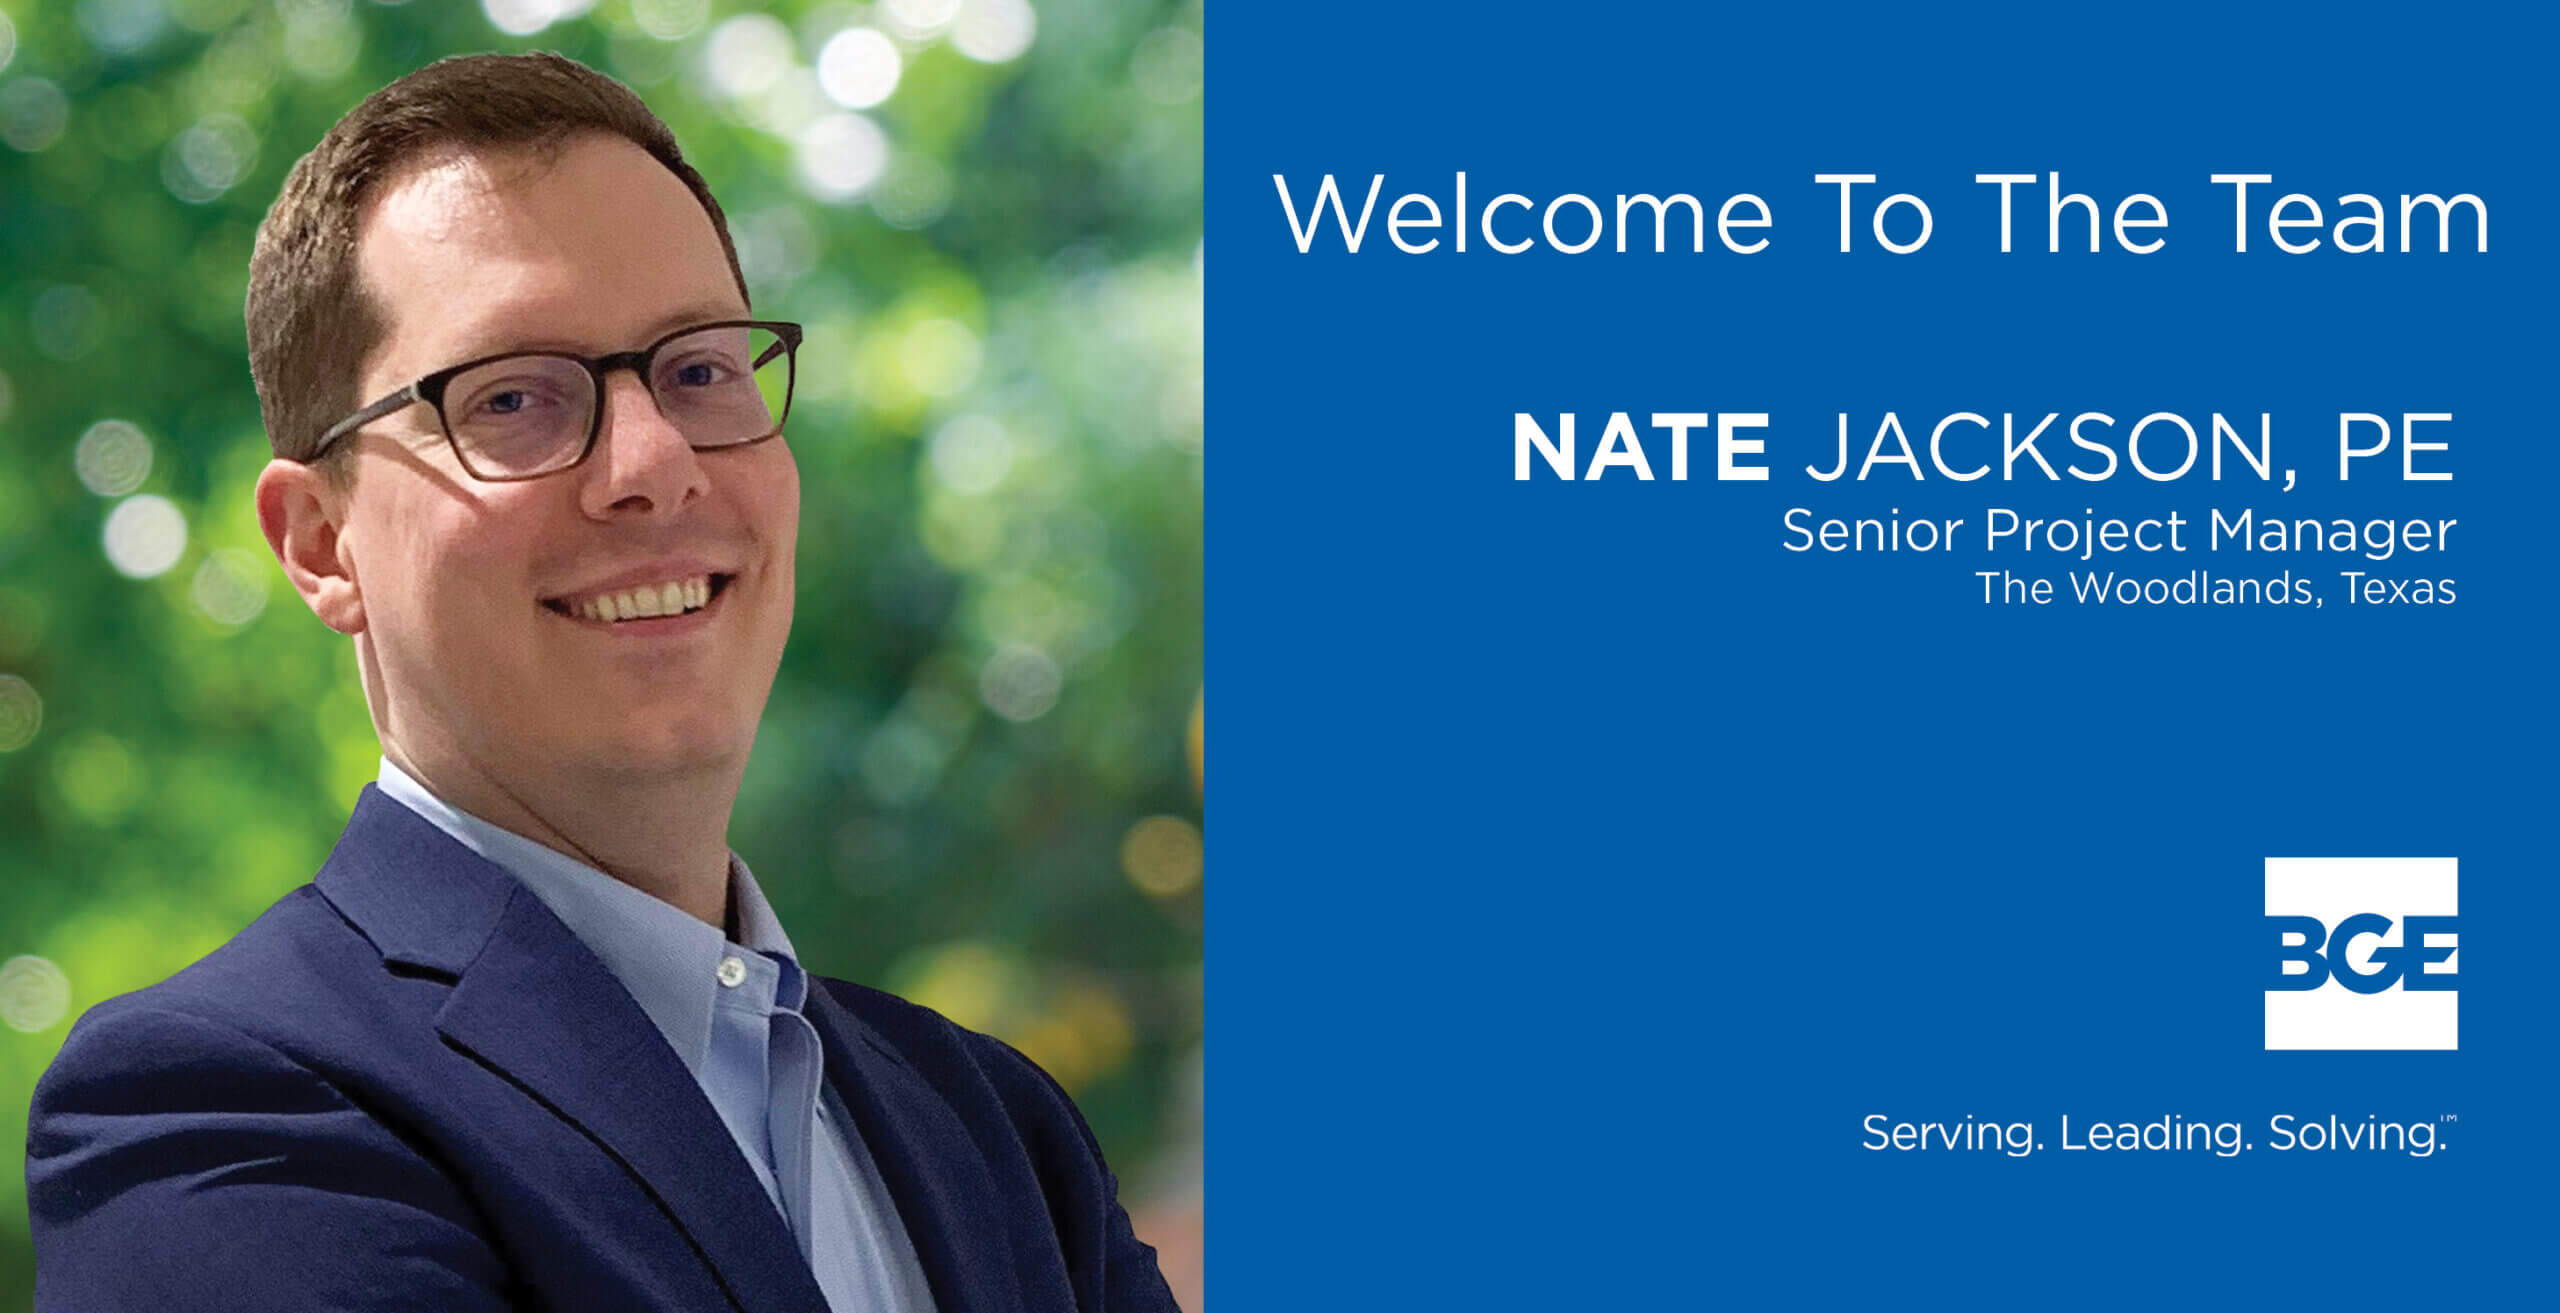 BGE Welcomes Nate Jackson As Senior Project Manager in The Woodlands Office